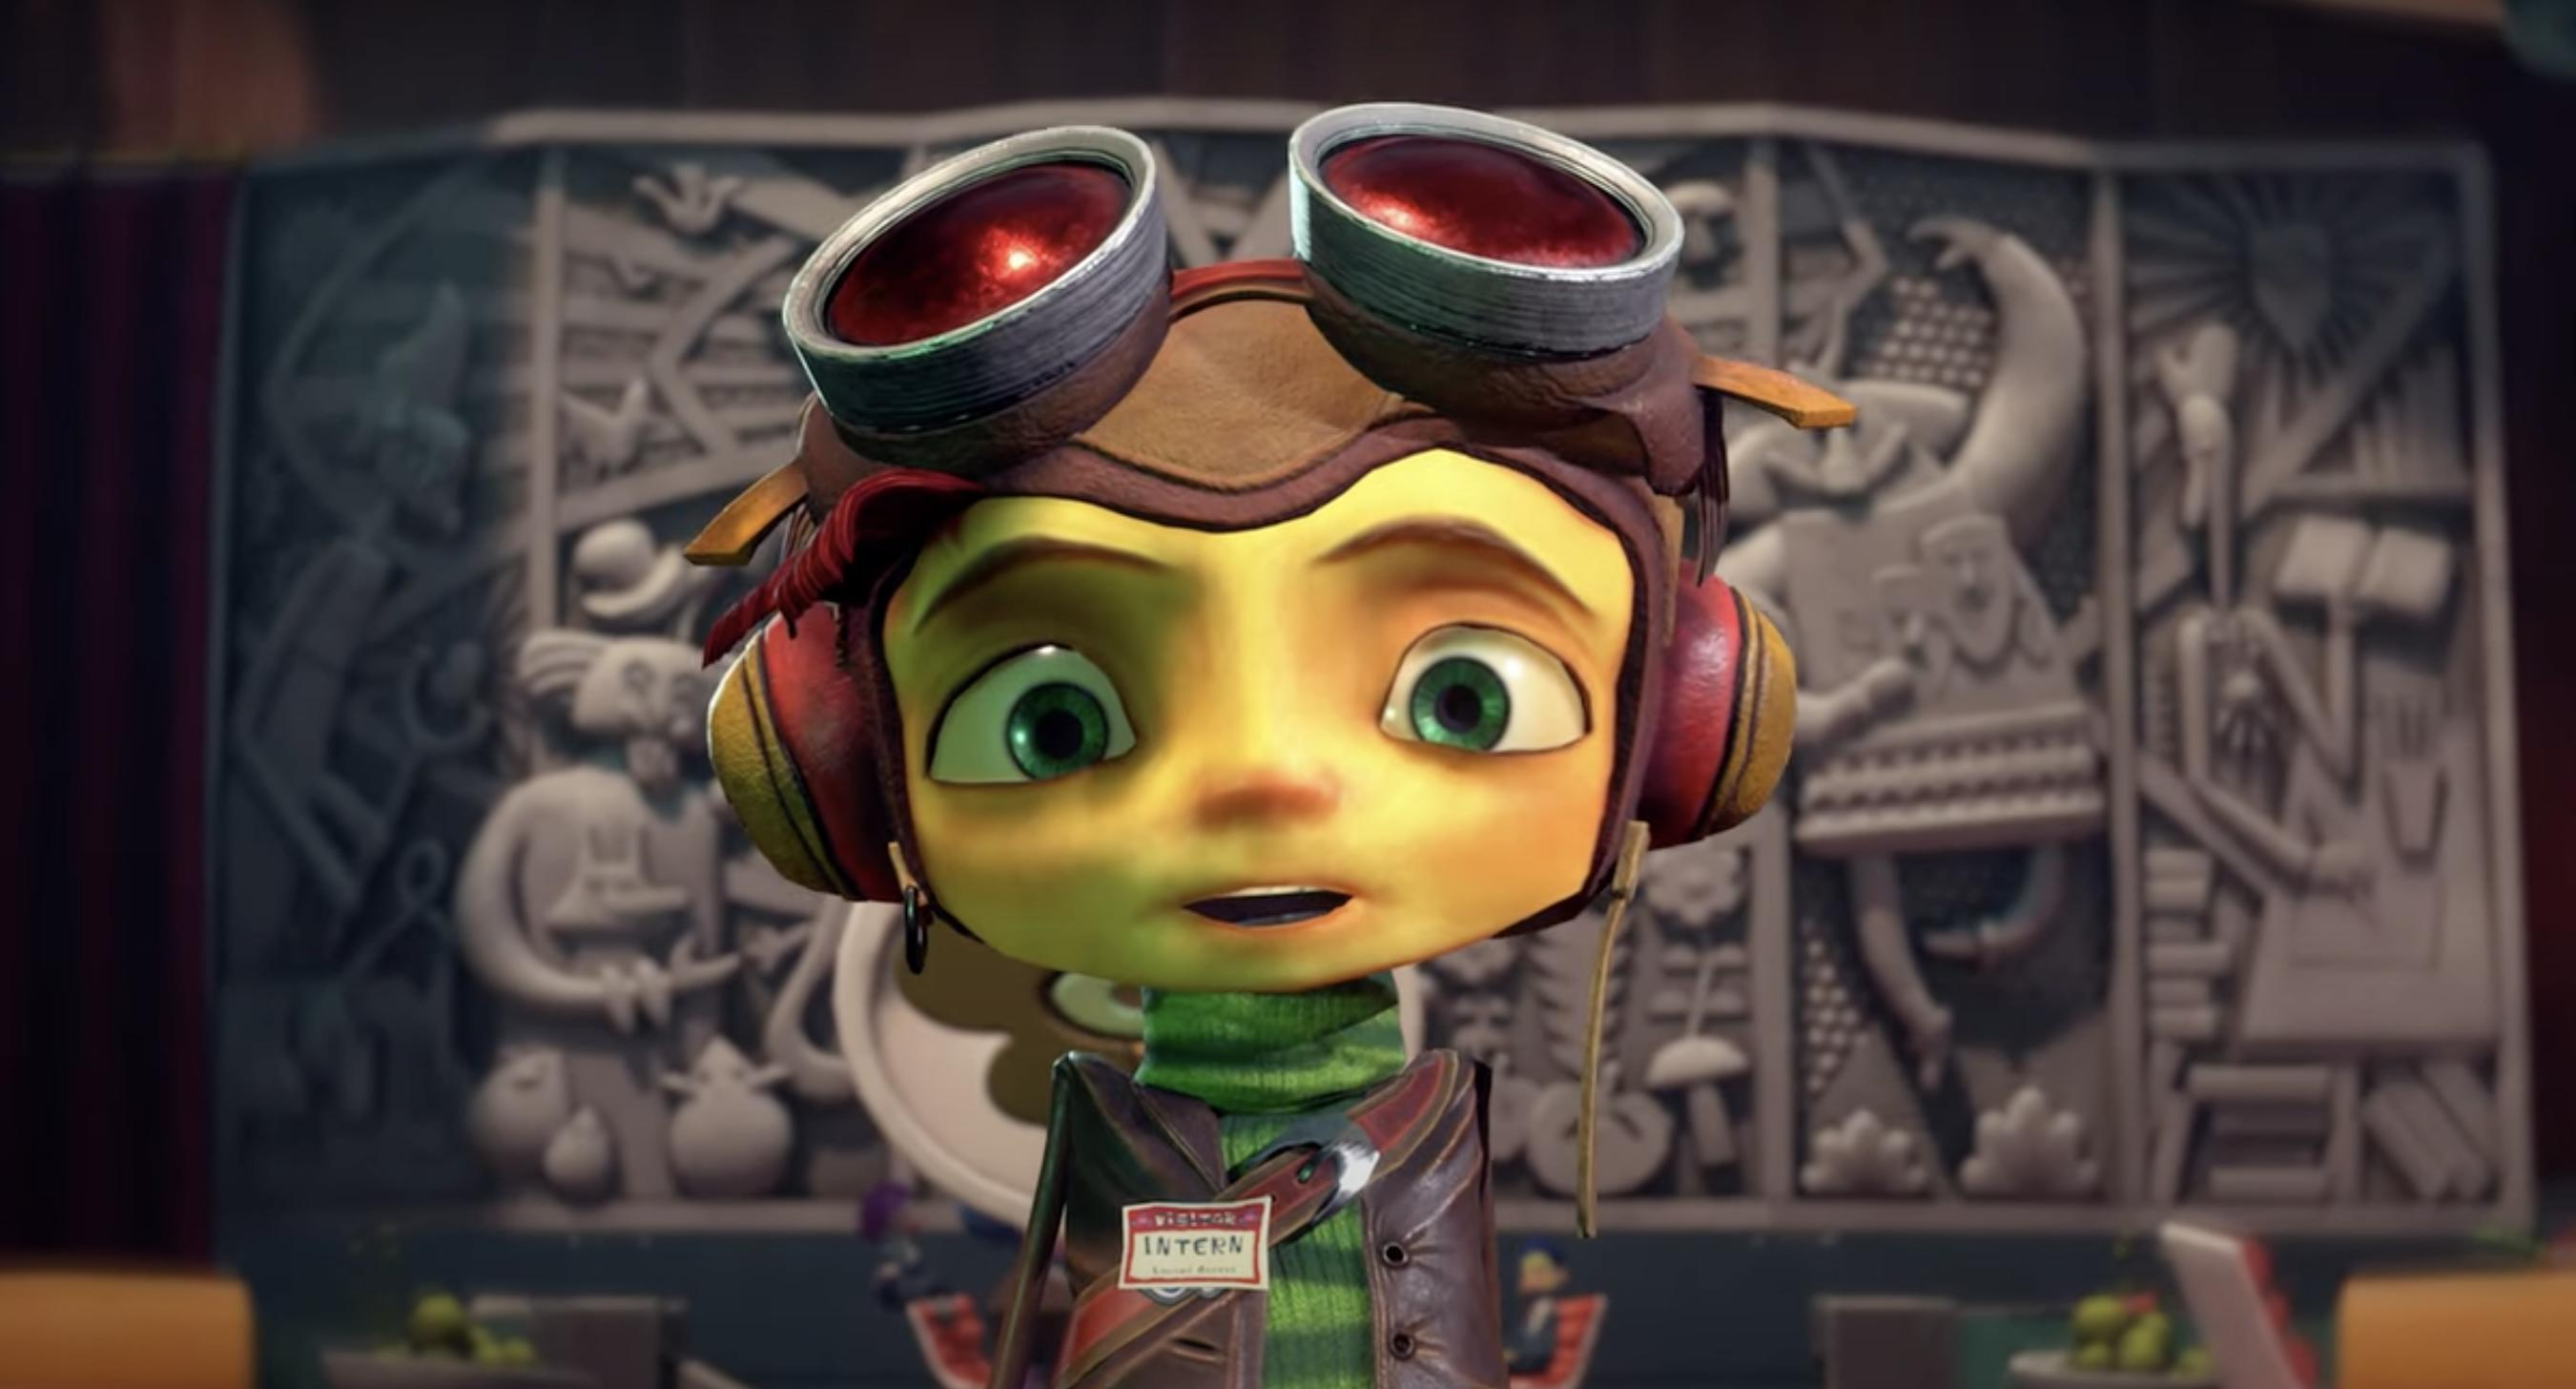 Psychonauts 2' finally arrives on August 25, 2021 | Engadget